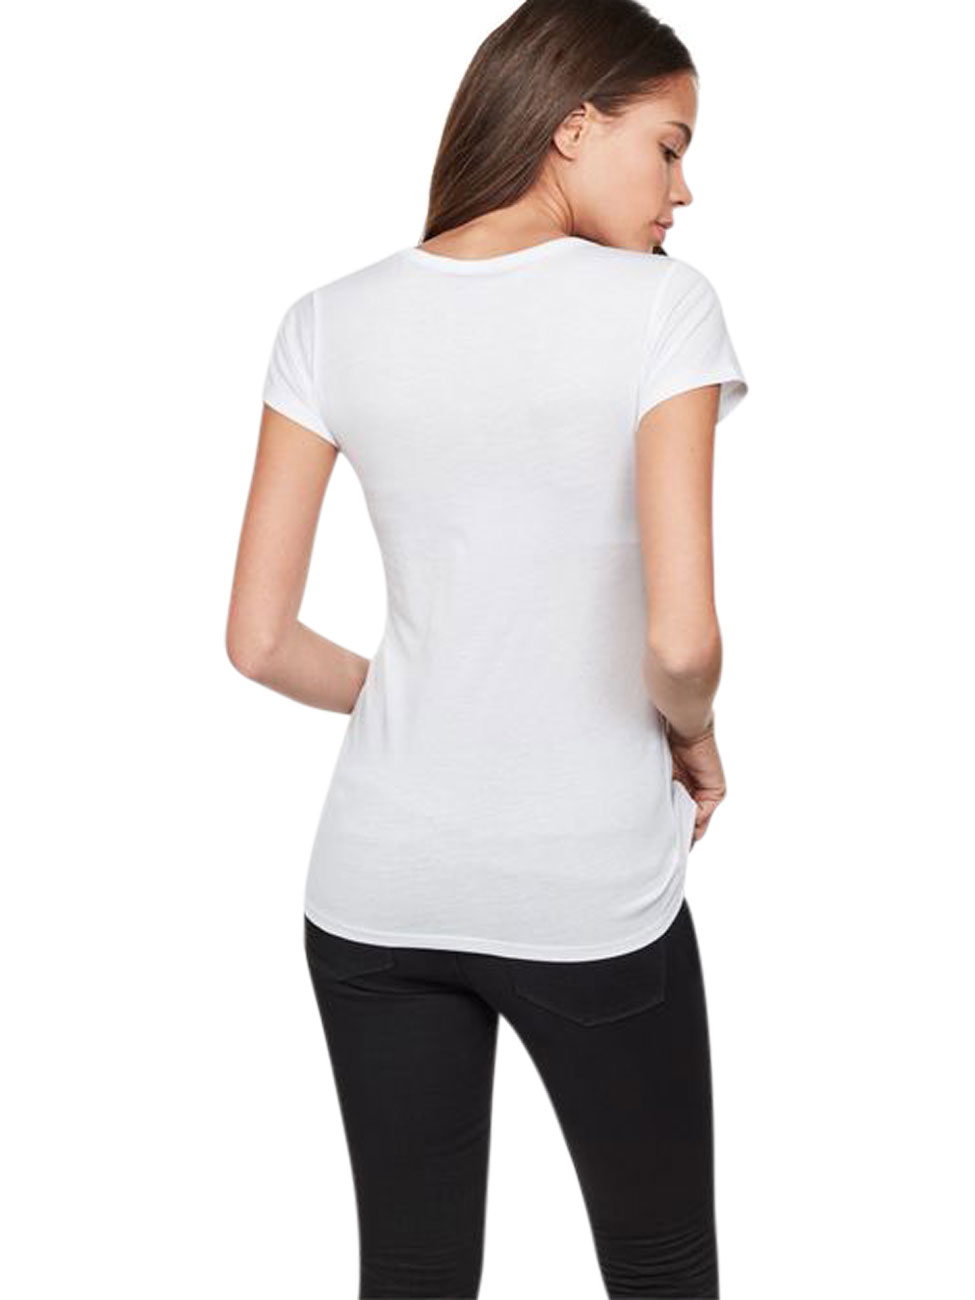 G-Star Damen T-Shirt Monthon - Slim Fit